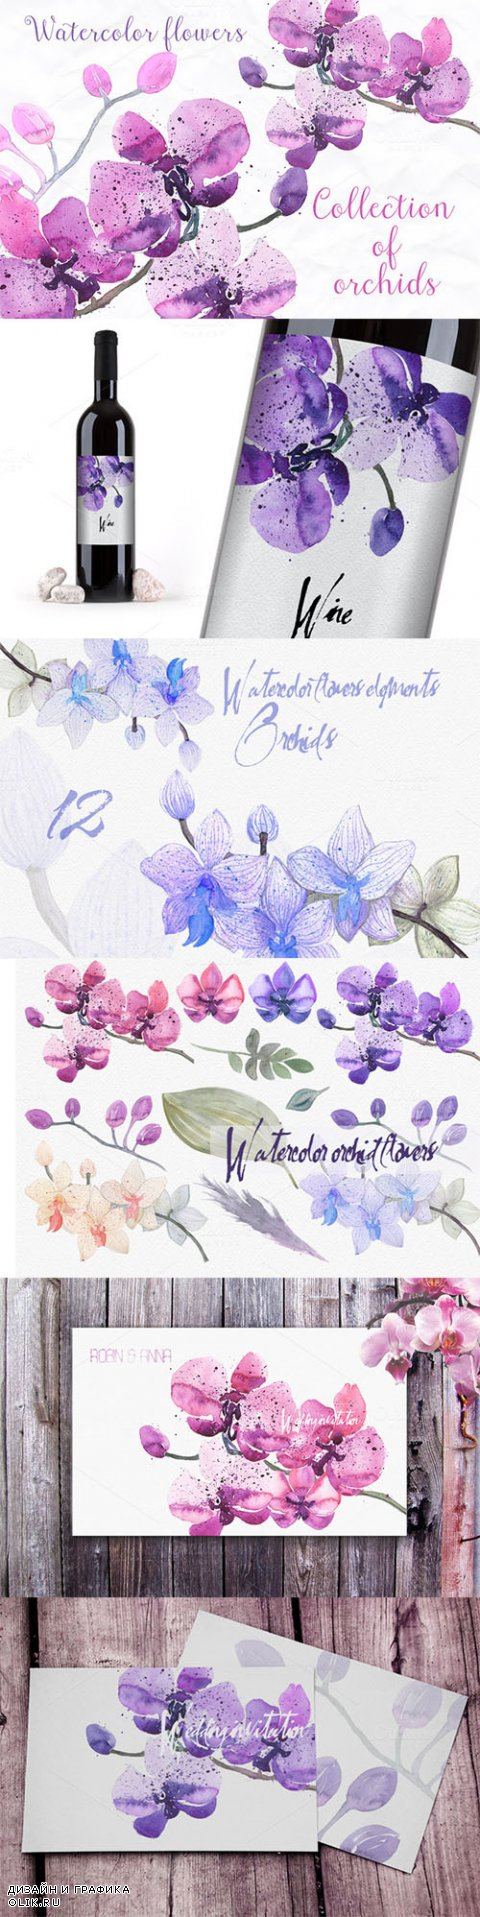 12 watercolor orchid - Creativemarket 231944